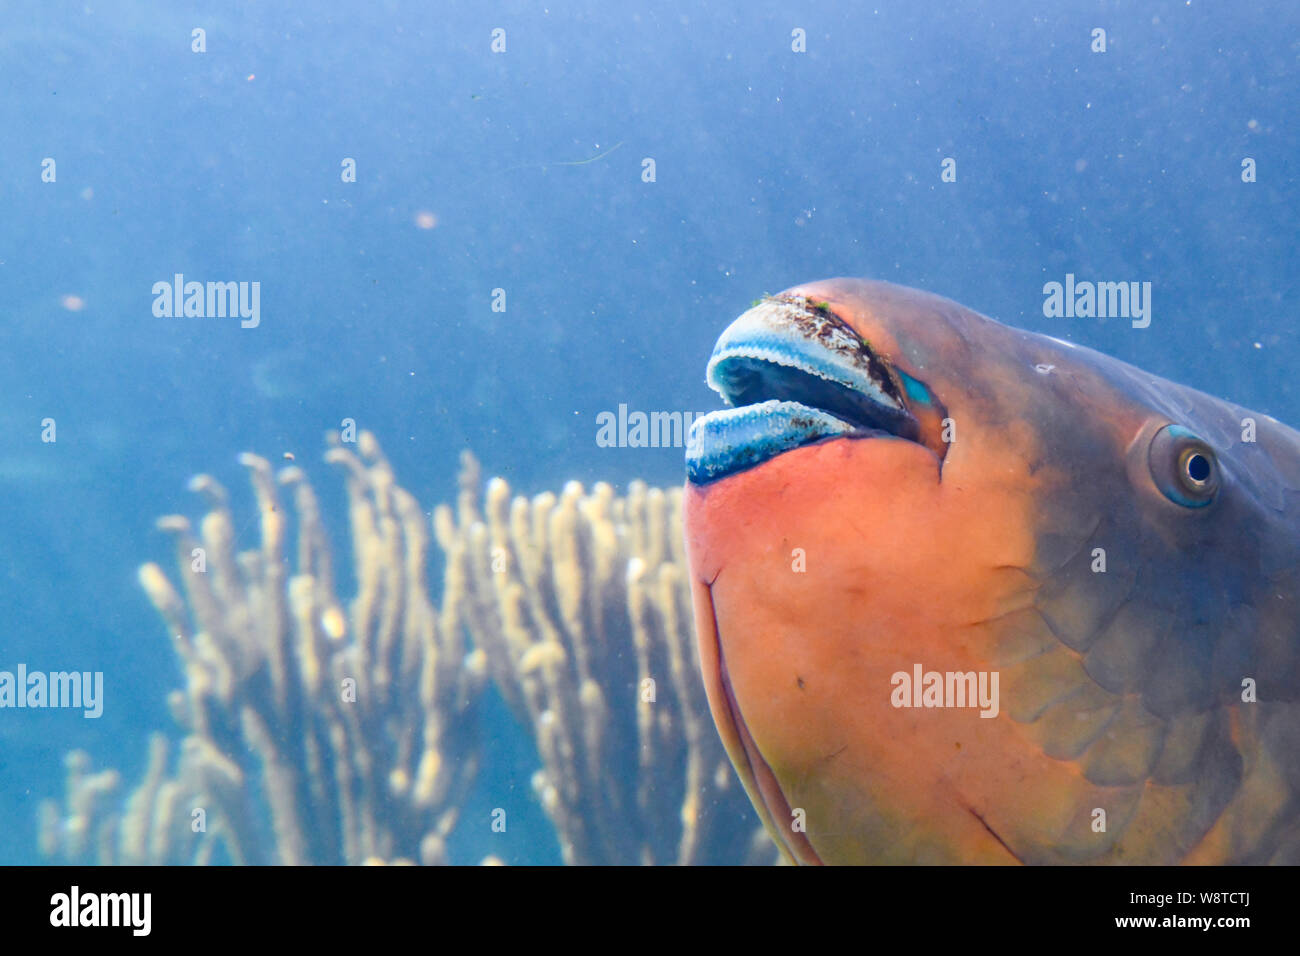 parrotfish Scaridae - orange fish with blue lips - Bermuda Aquarium, Museum and Zoo - colorful Caribbean saltwater fish - closeup of parrotfish mouth Stock Photo